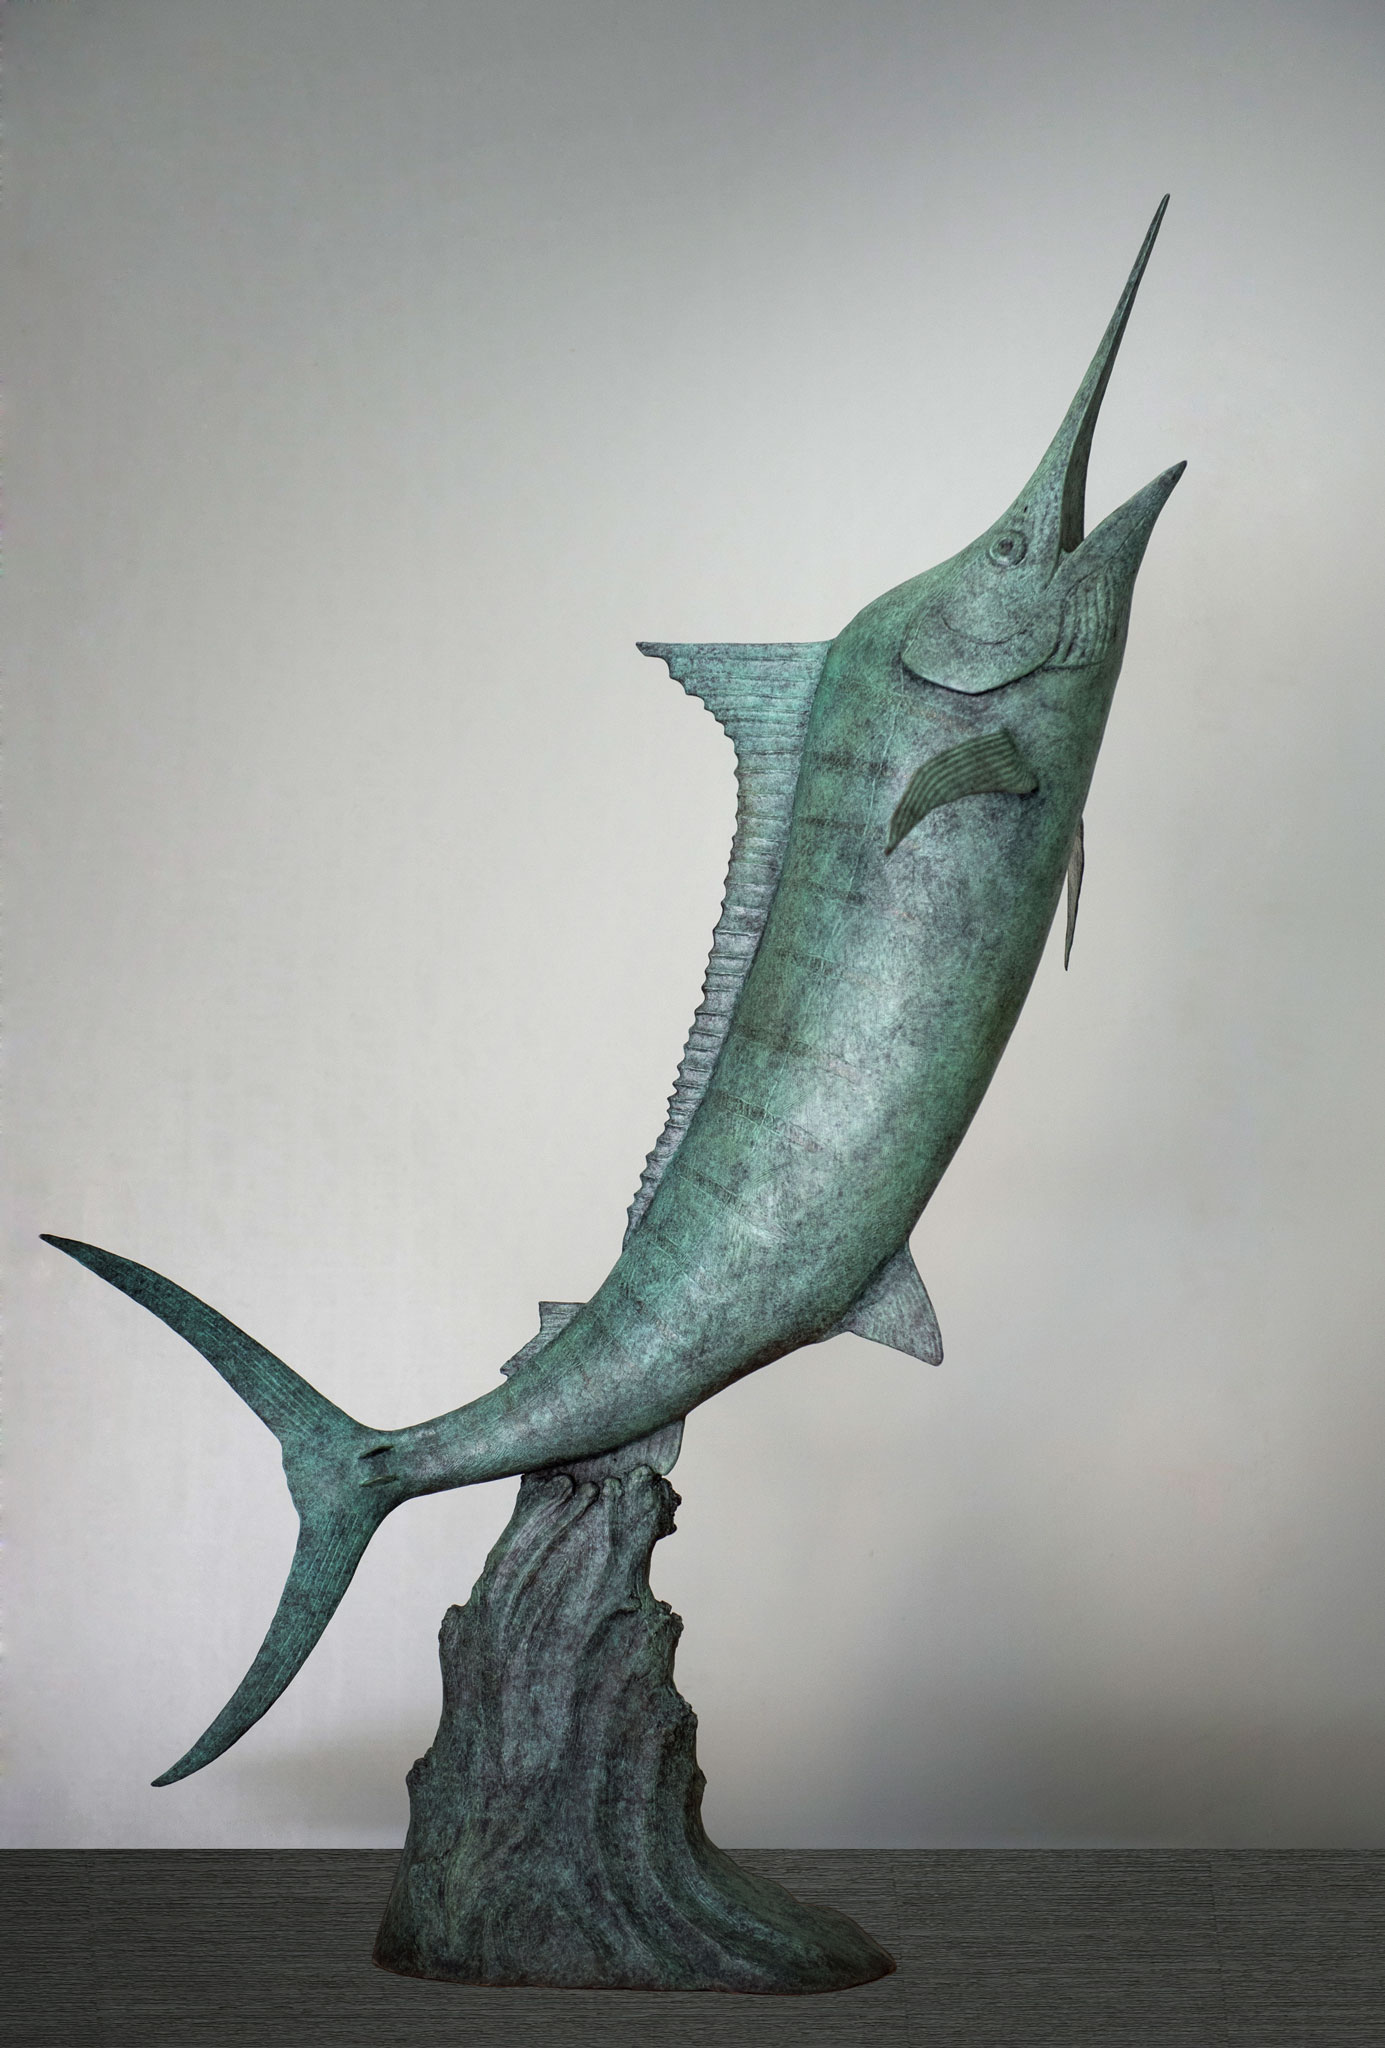 Marlin fish bronze sculpture by Anthony Smith